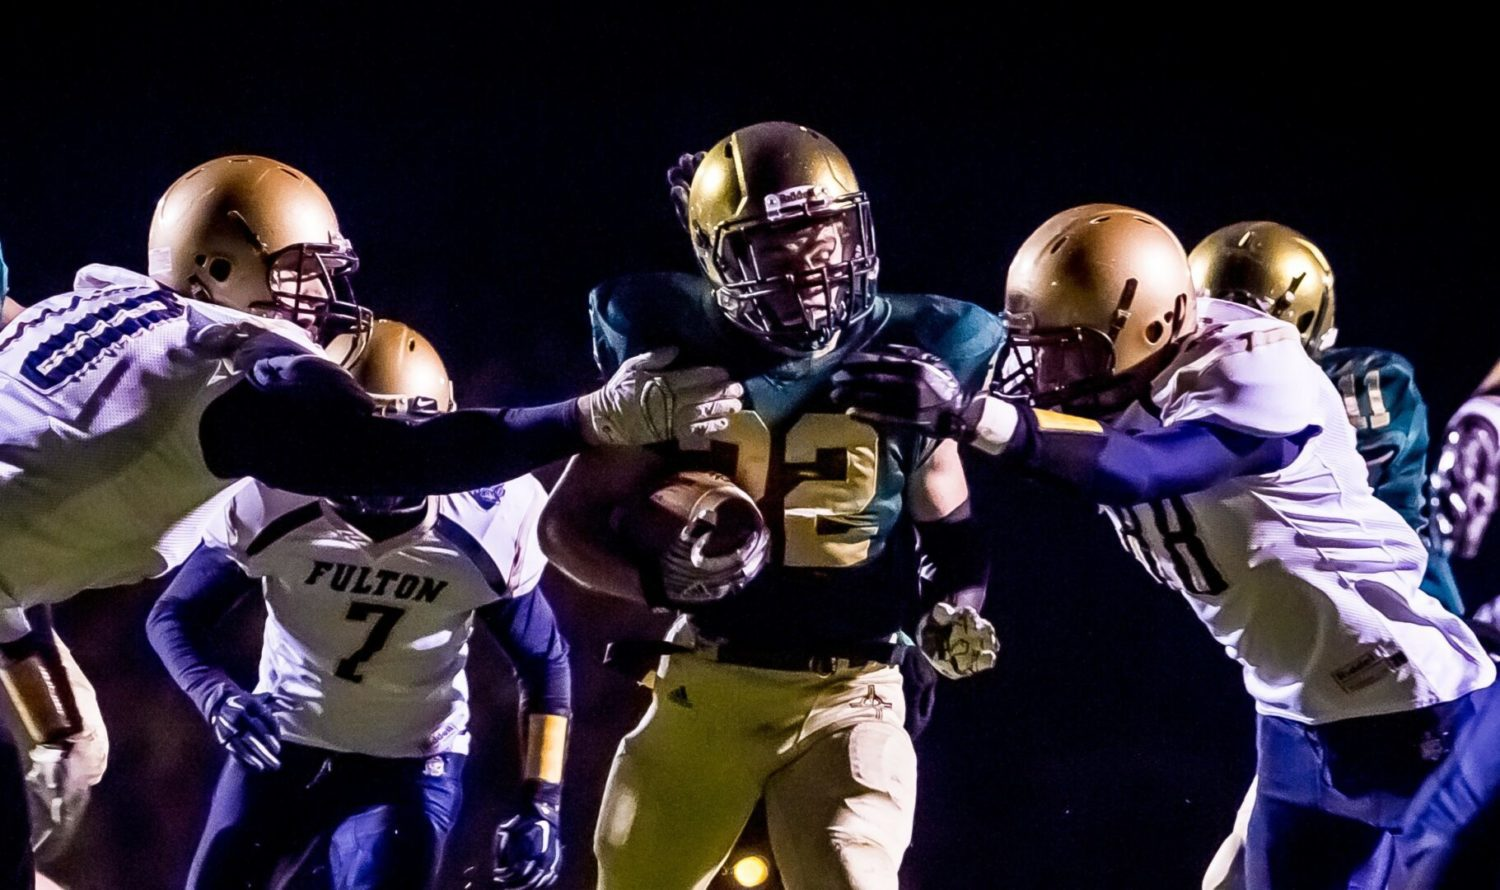 Muskegon Catholic takes its first step toward another Division 8 crown with a 56-8 pasting of Fulton